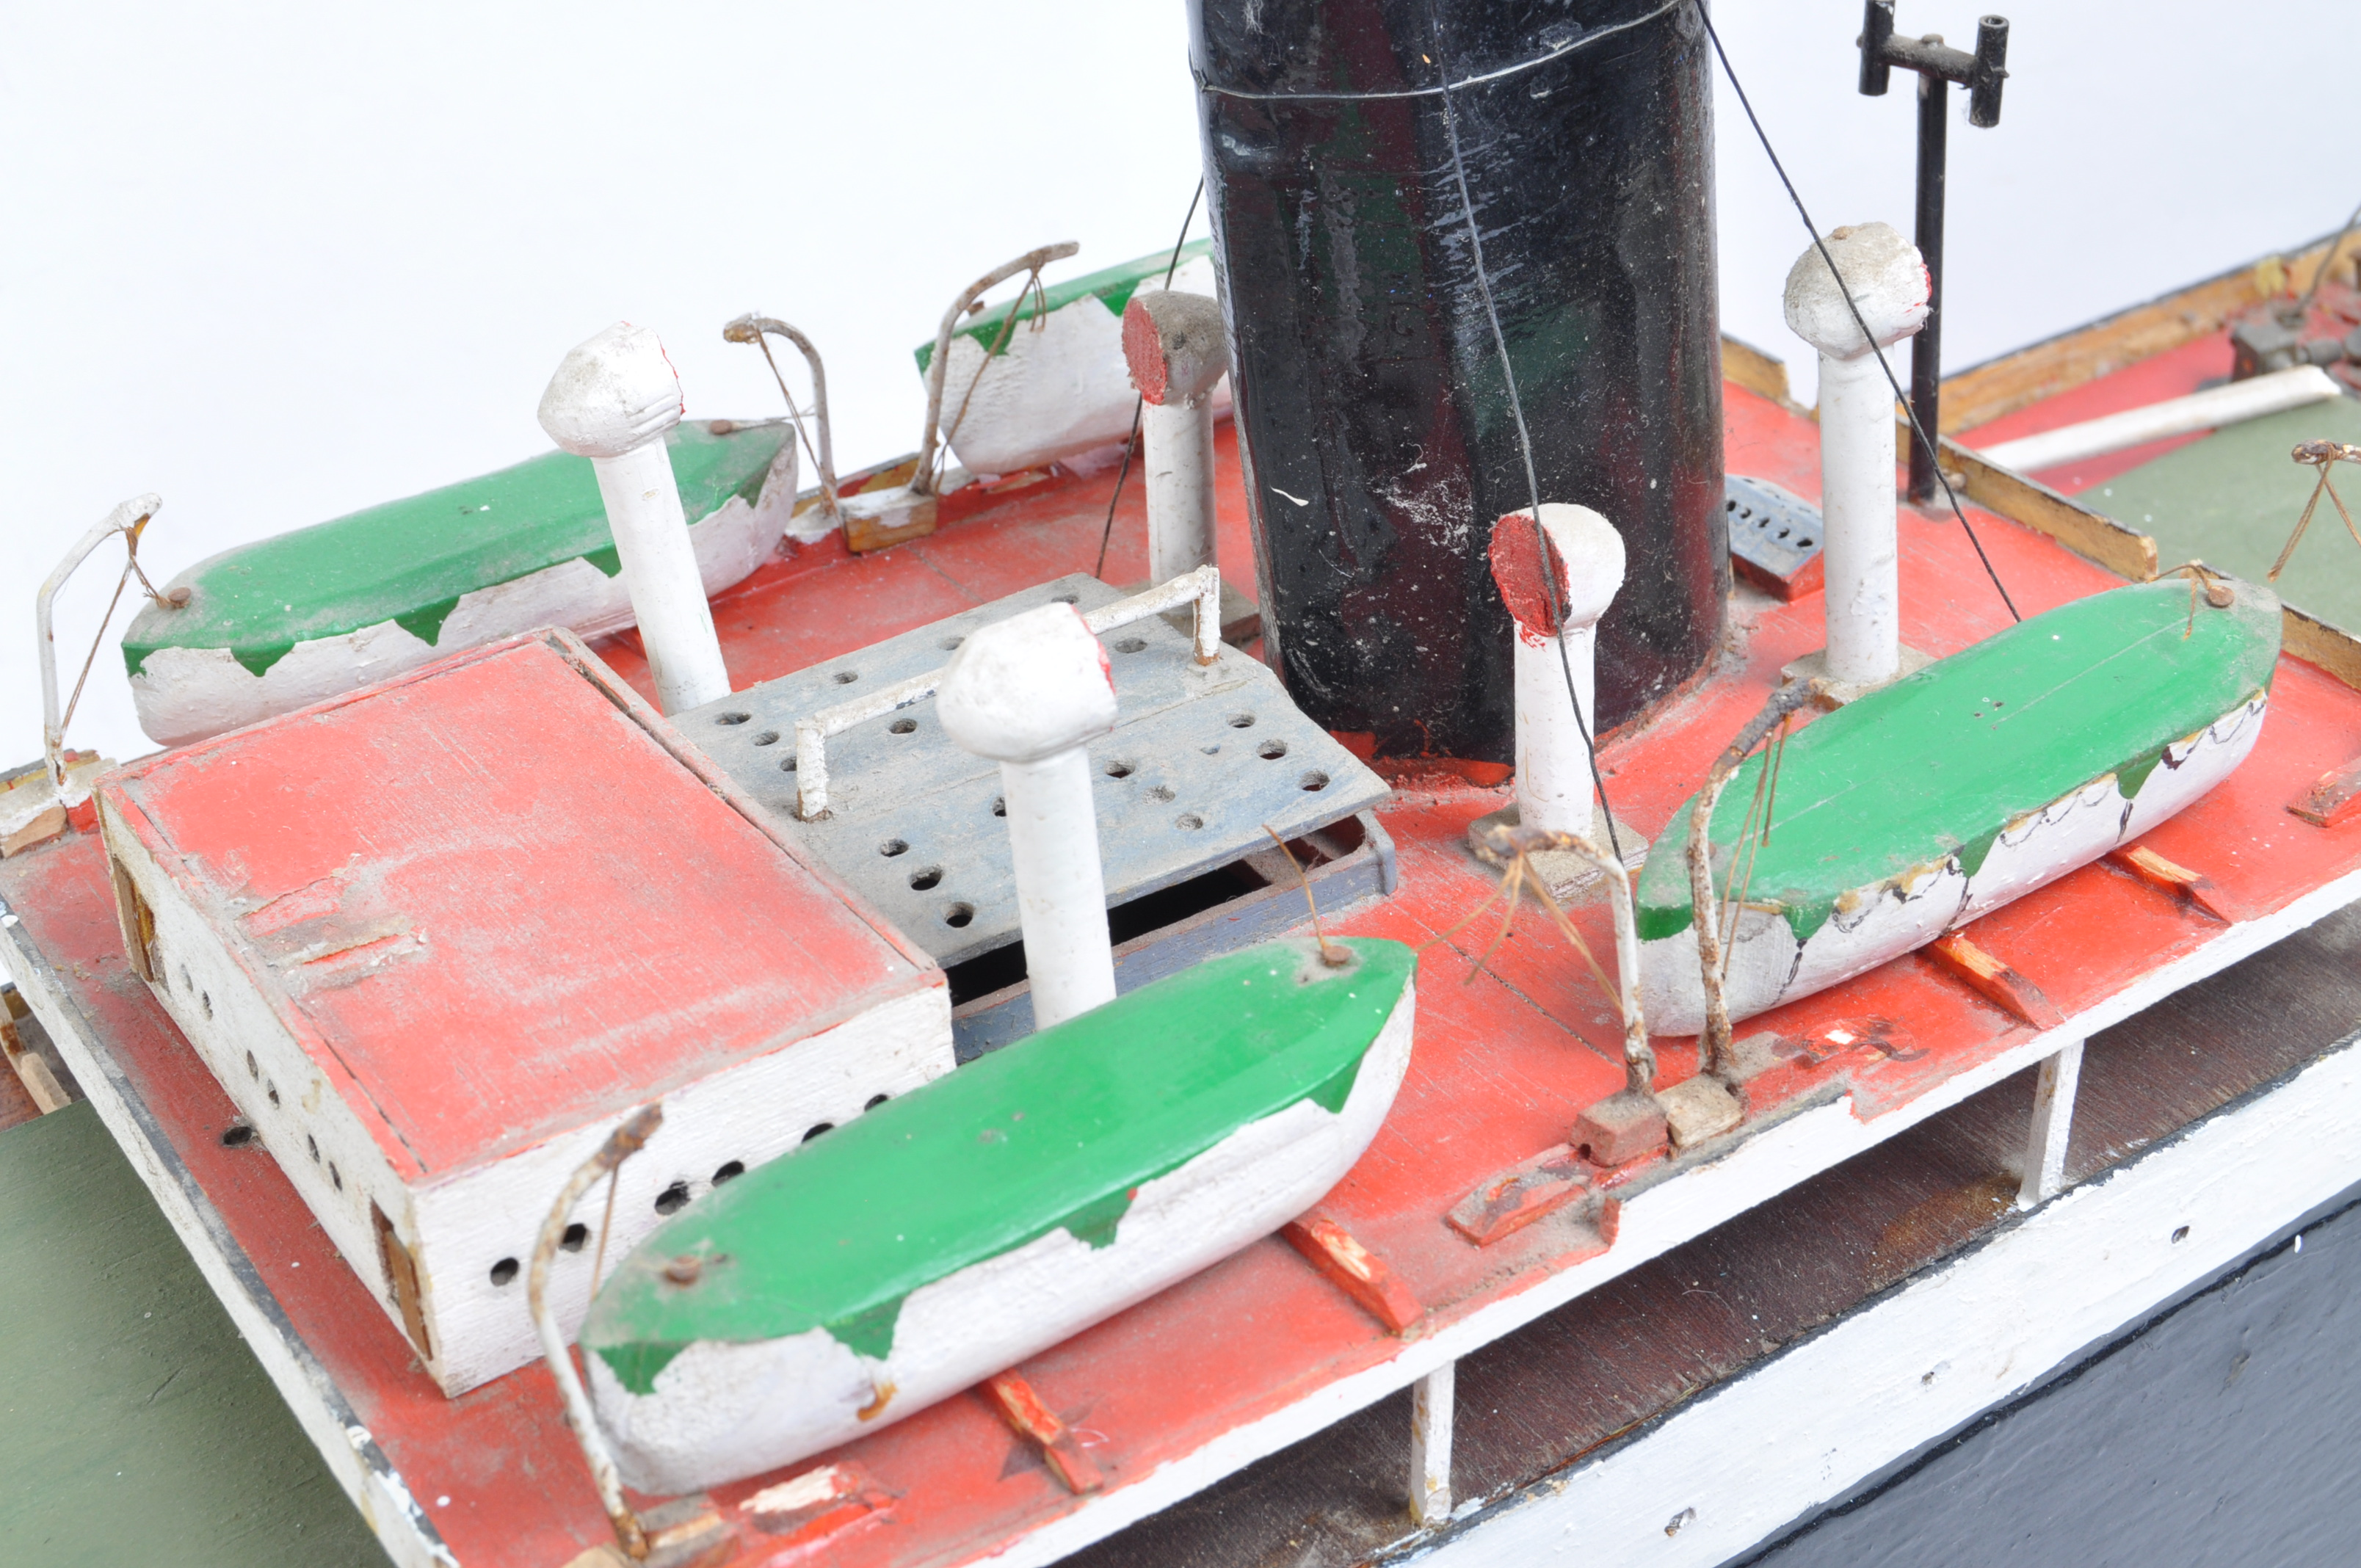 SHIPPING - RADIO CONTROLLED SCALE MODEL ' FORT INDUS ' CARGO SHIP - Image 5 of 11